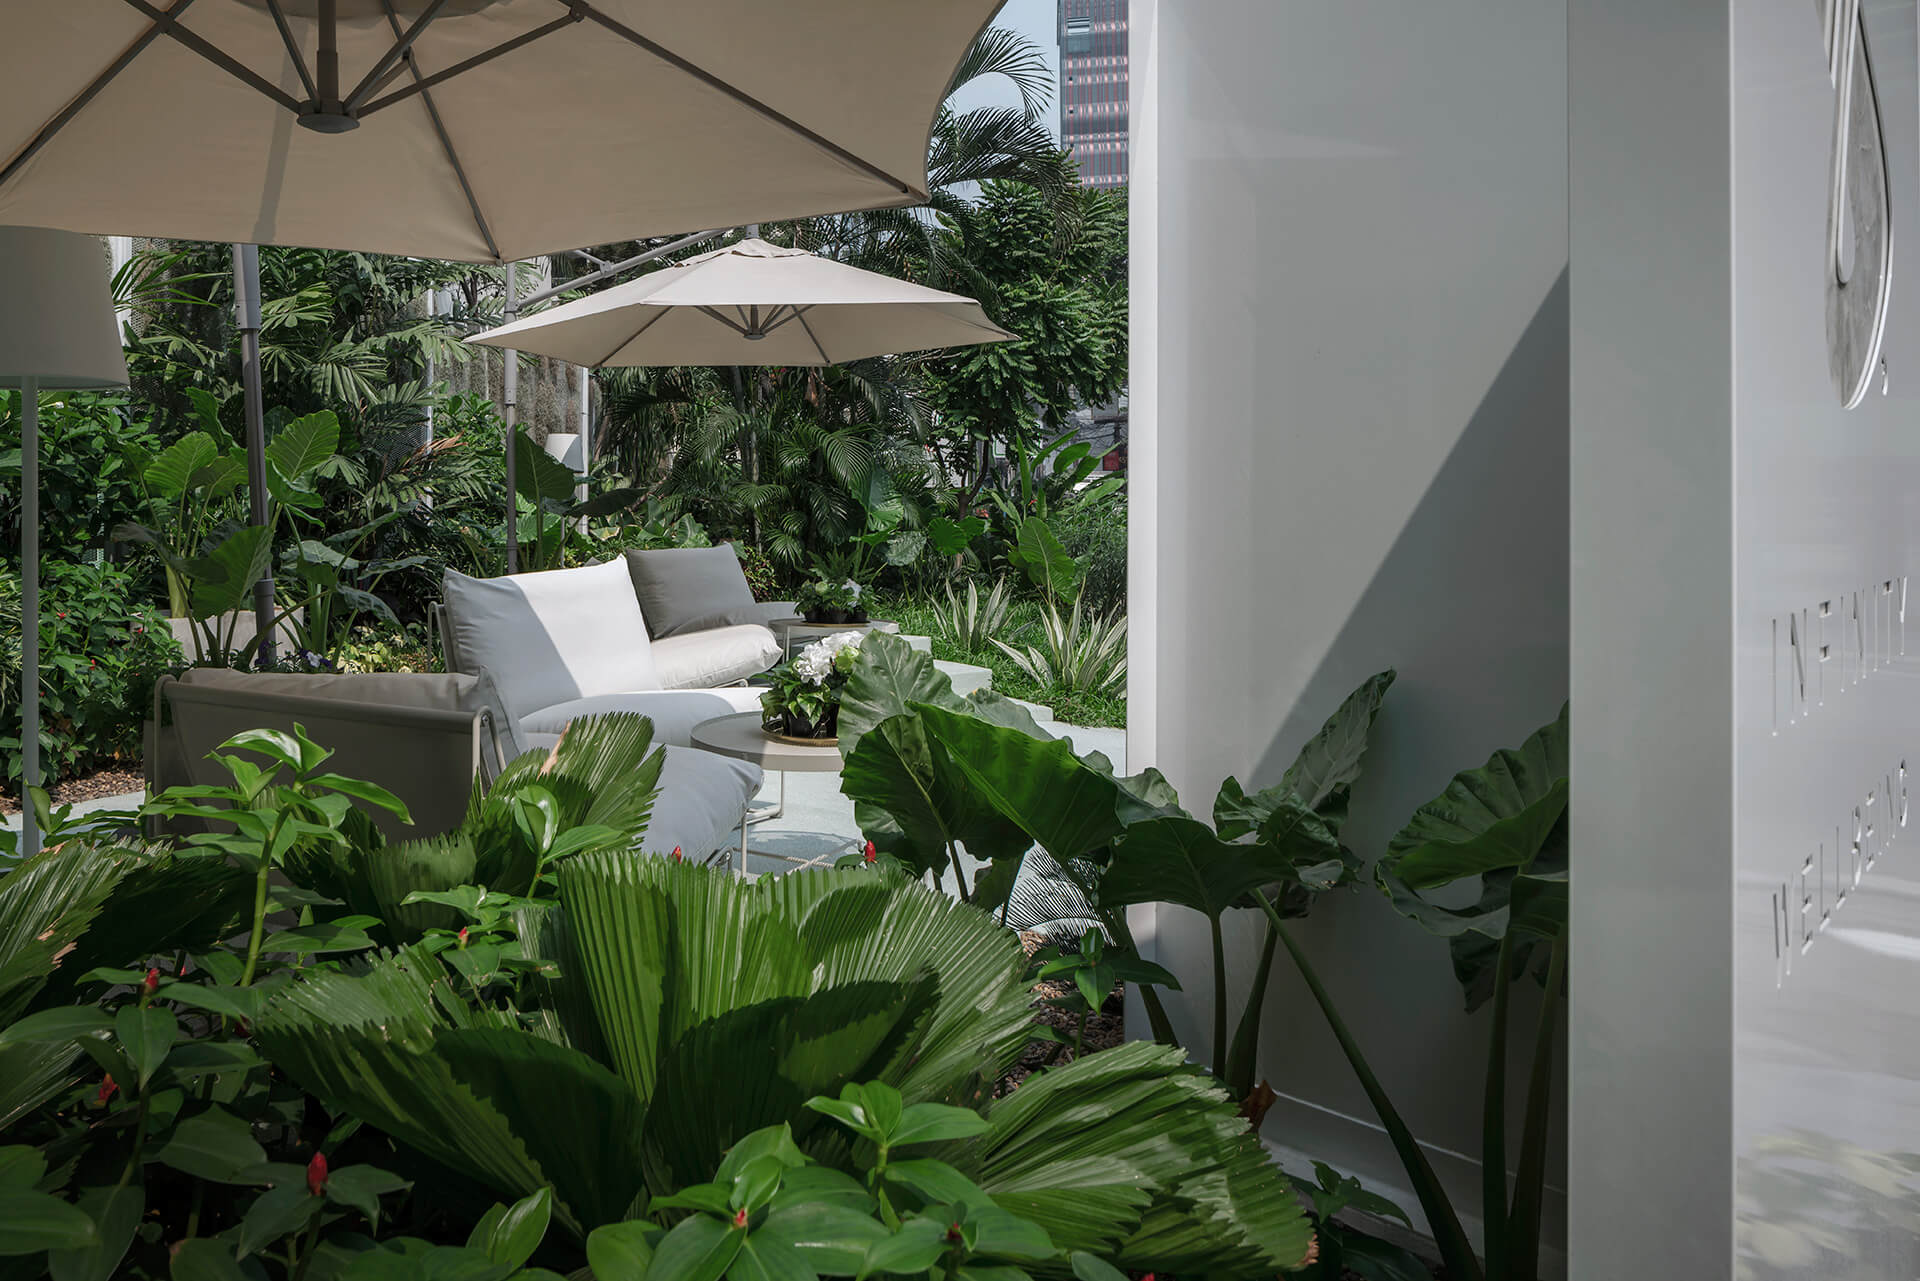 Tropical garden outside the spa veils it from the surrounding street | Infinity Wellbeing | Space Popular | STIRworld